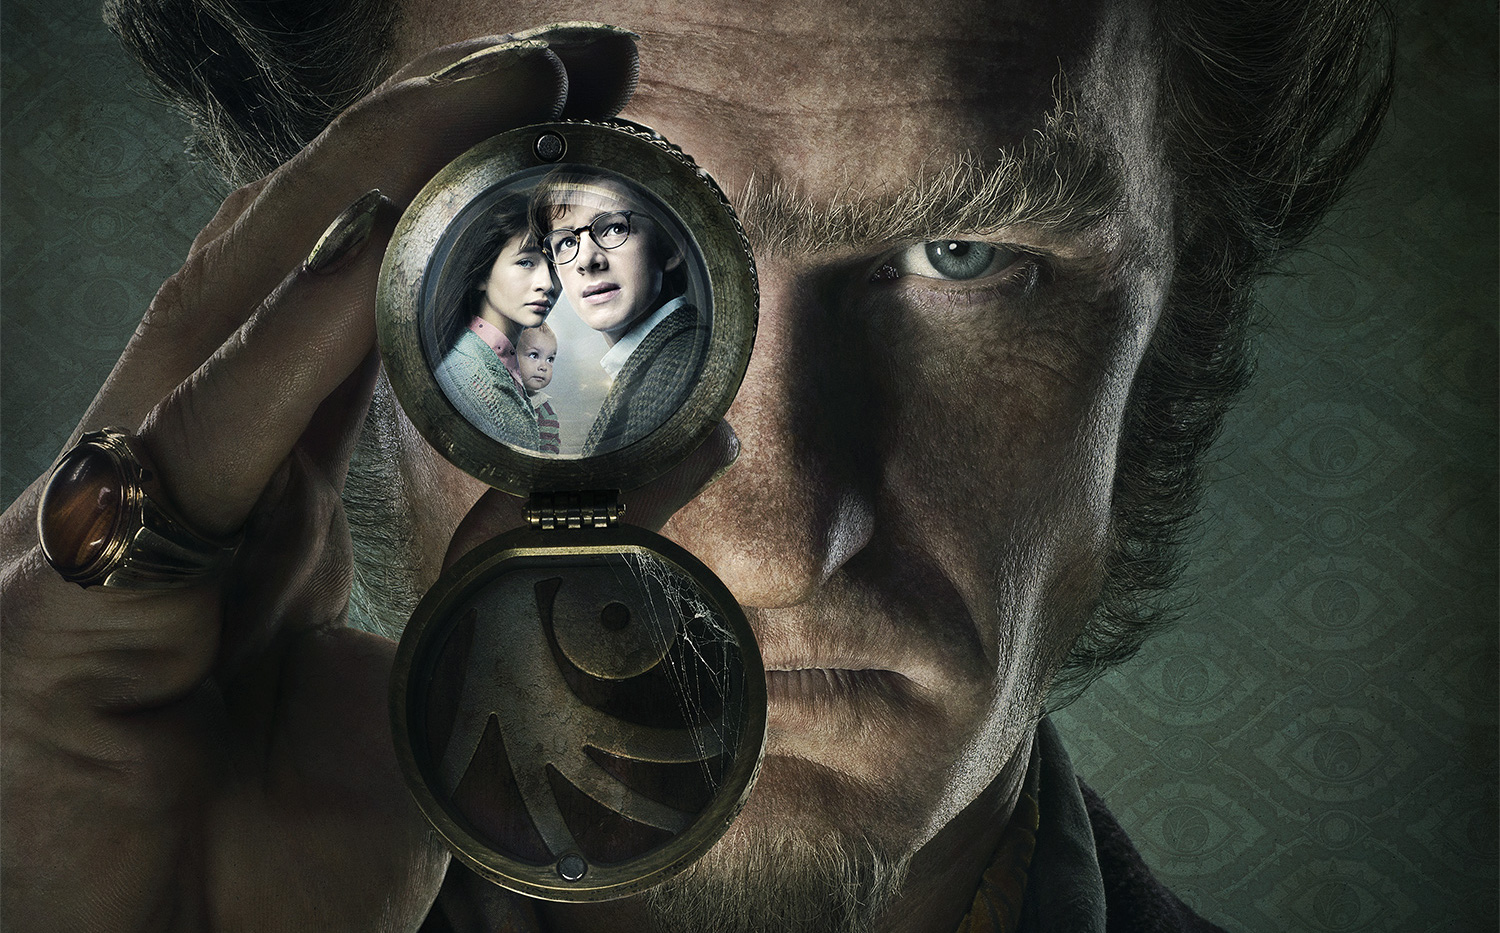 lemony-snicket-a-series-of-unfortunate-events-poster-social